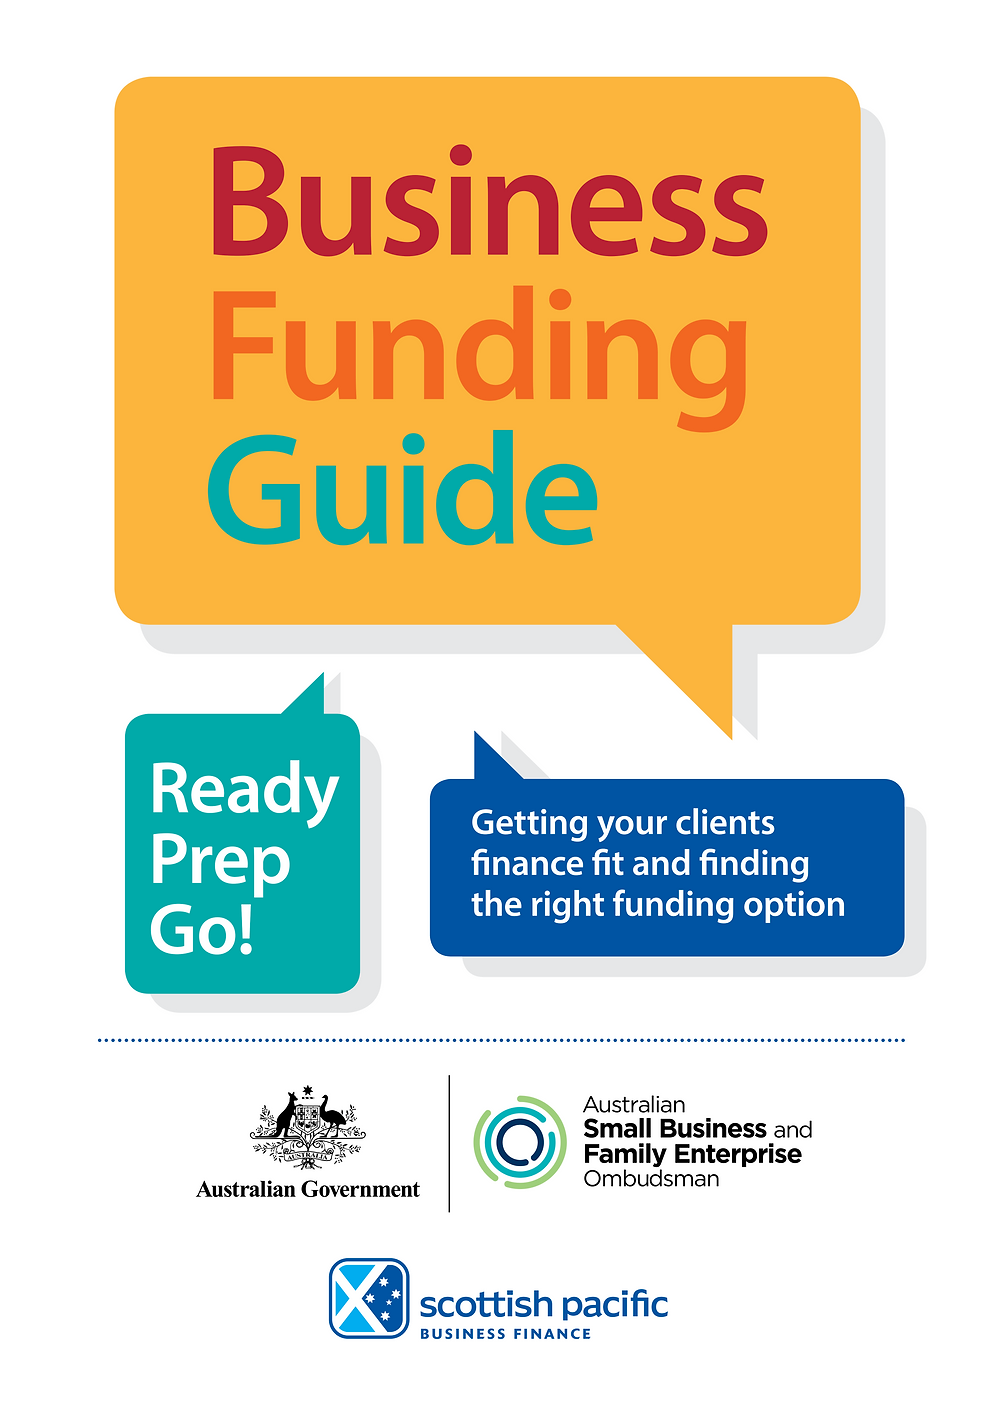 Business Funding Guide